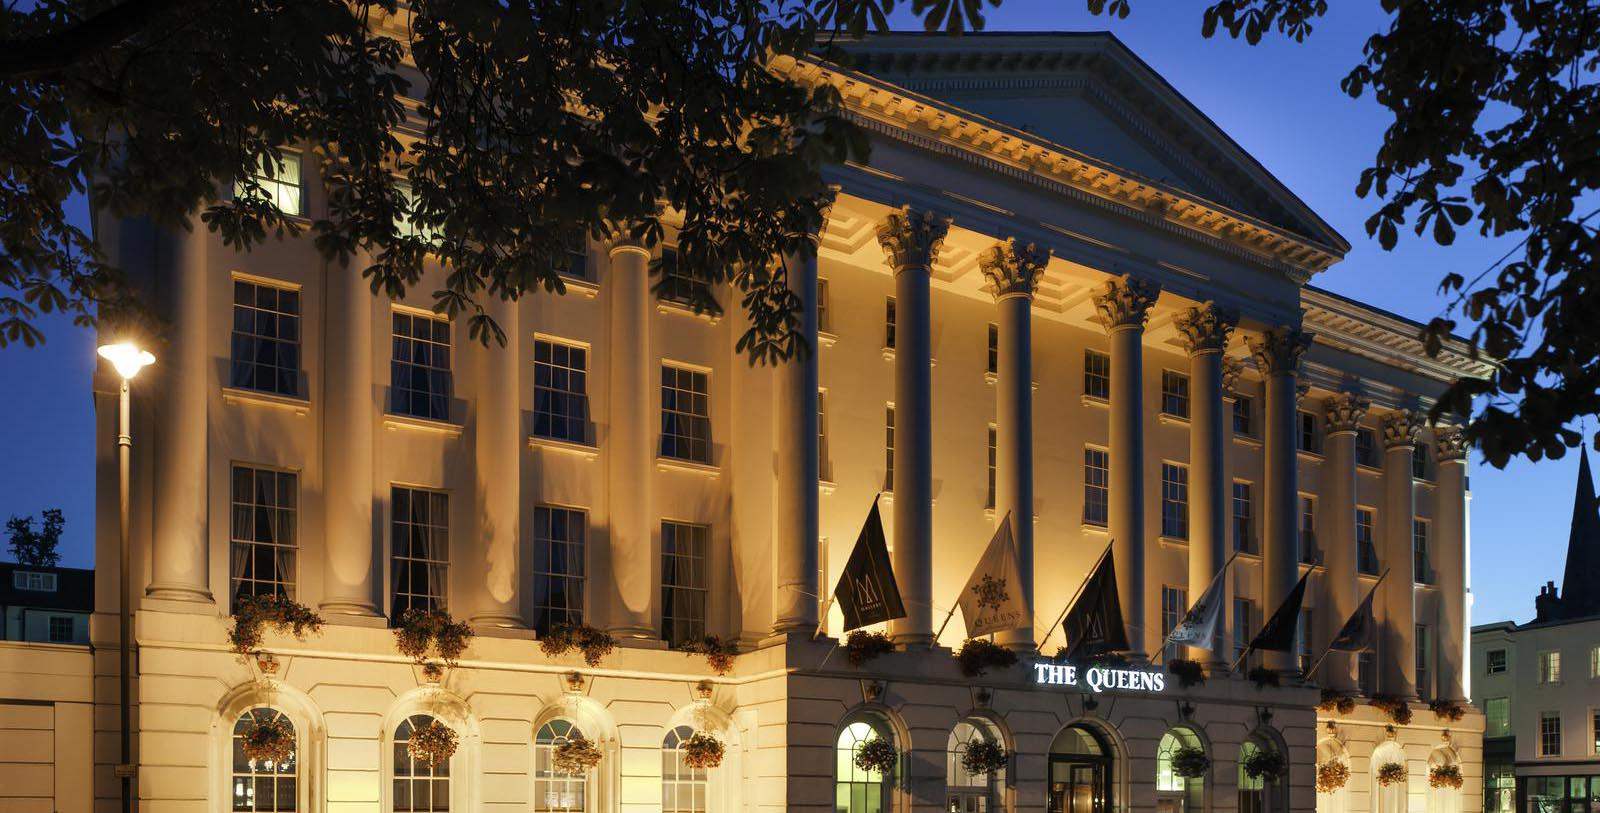 Image of Hotel Exterior Queens Hotel Cheltenham, 1838, Member of Historic Hotels Worldwide, Cheltenham, England, Special Offers, Discounted Rates, Families, Romantic Escape, Honeymoons, Anniversaries, Reunions